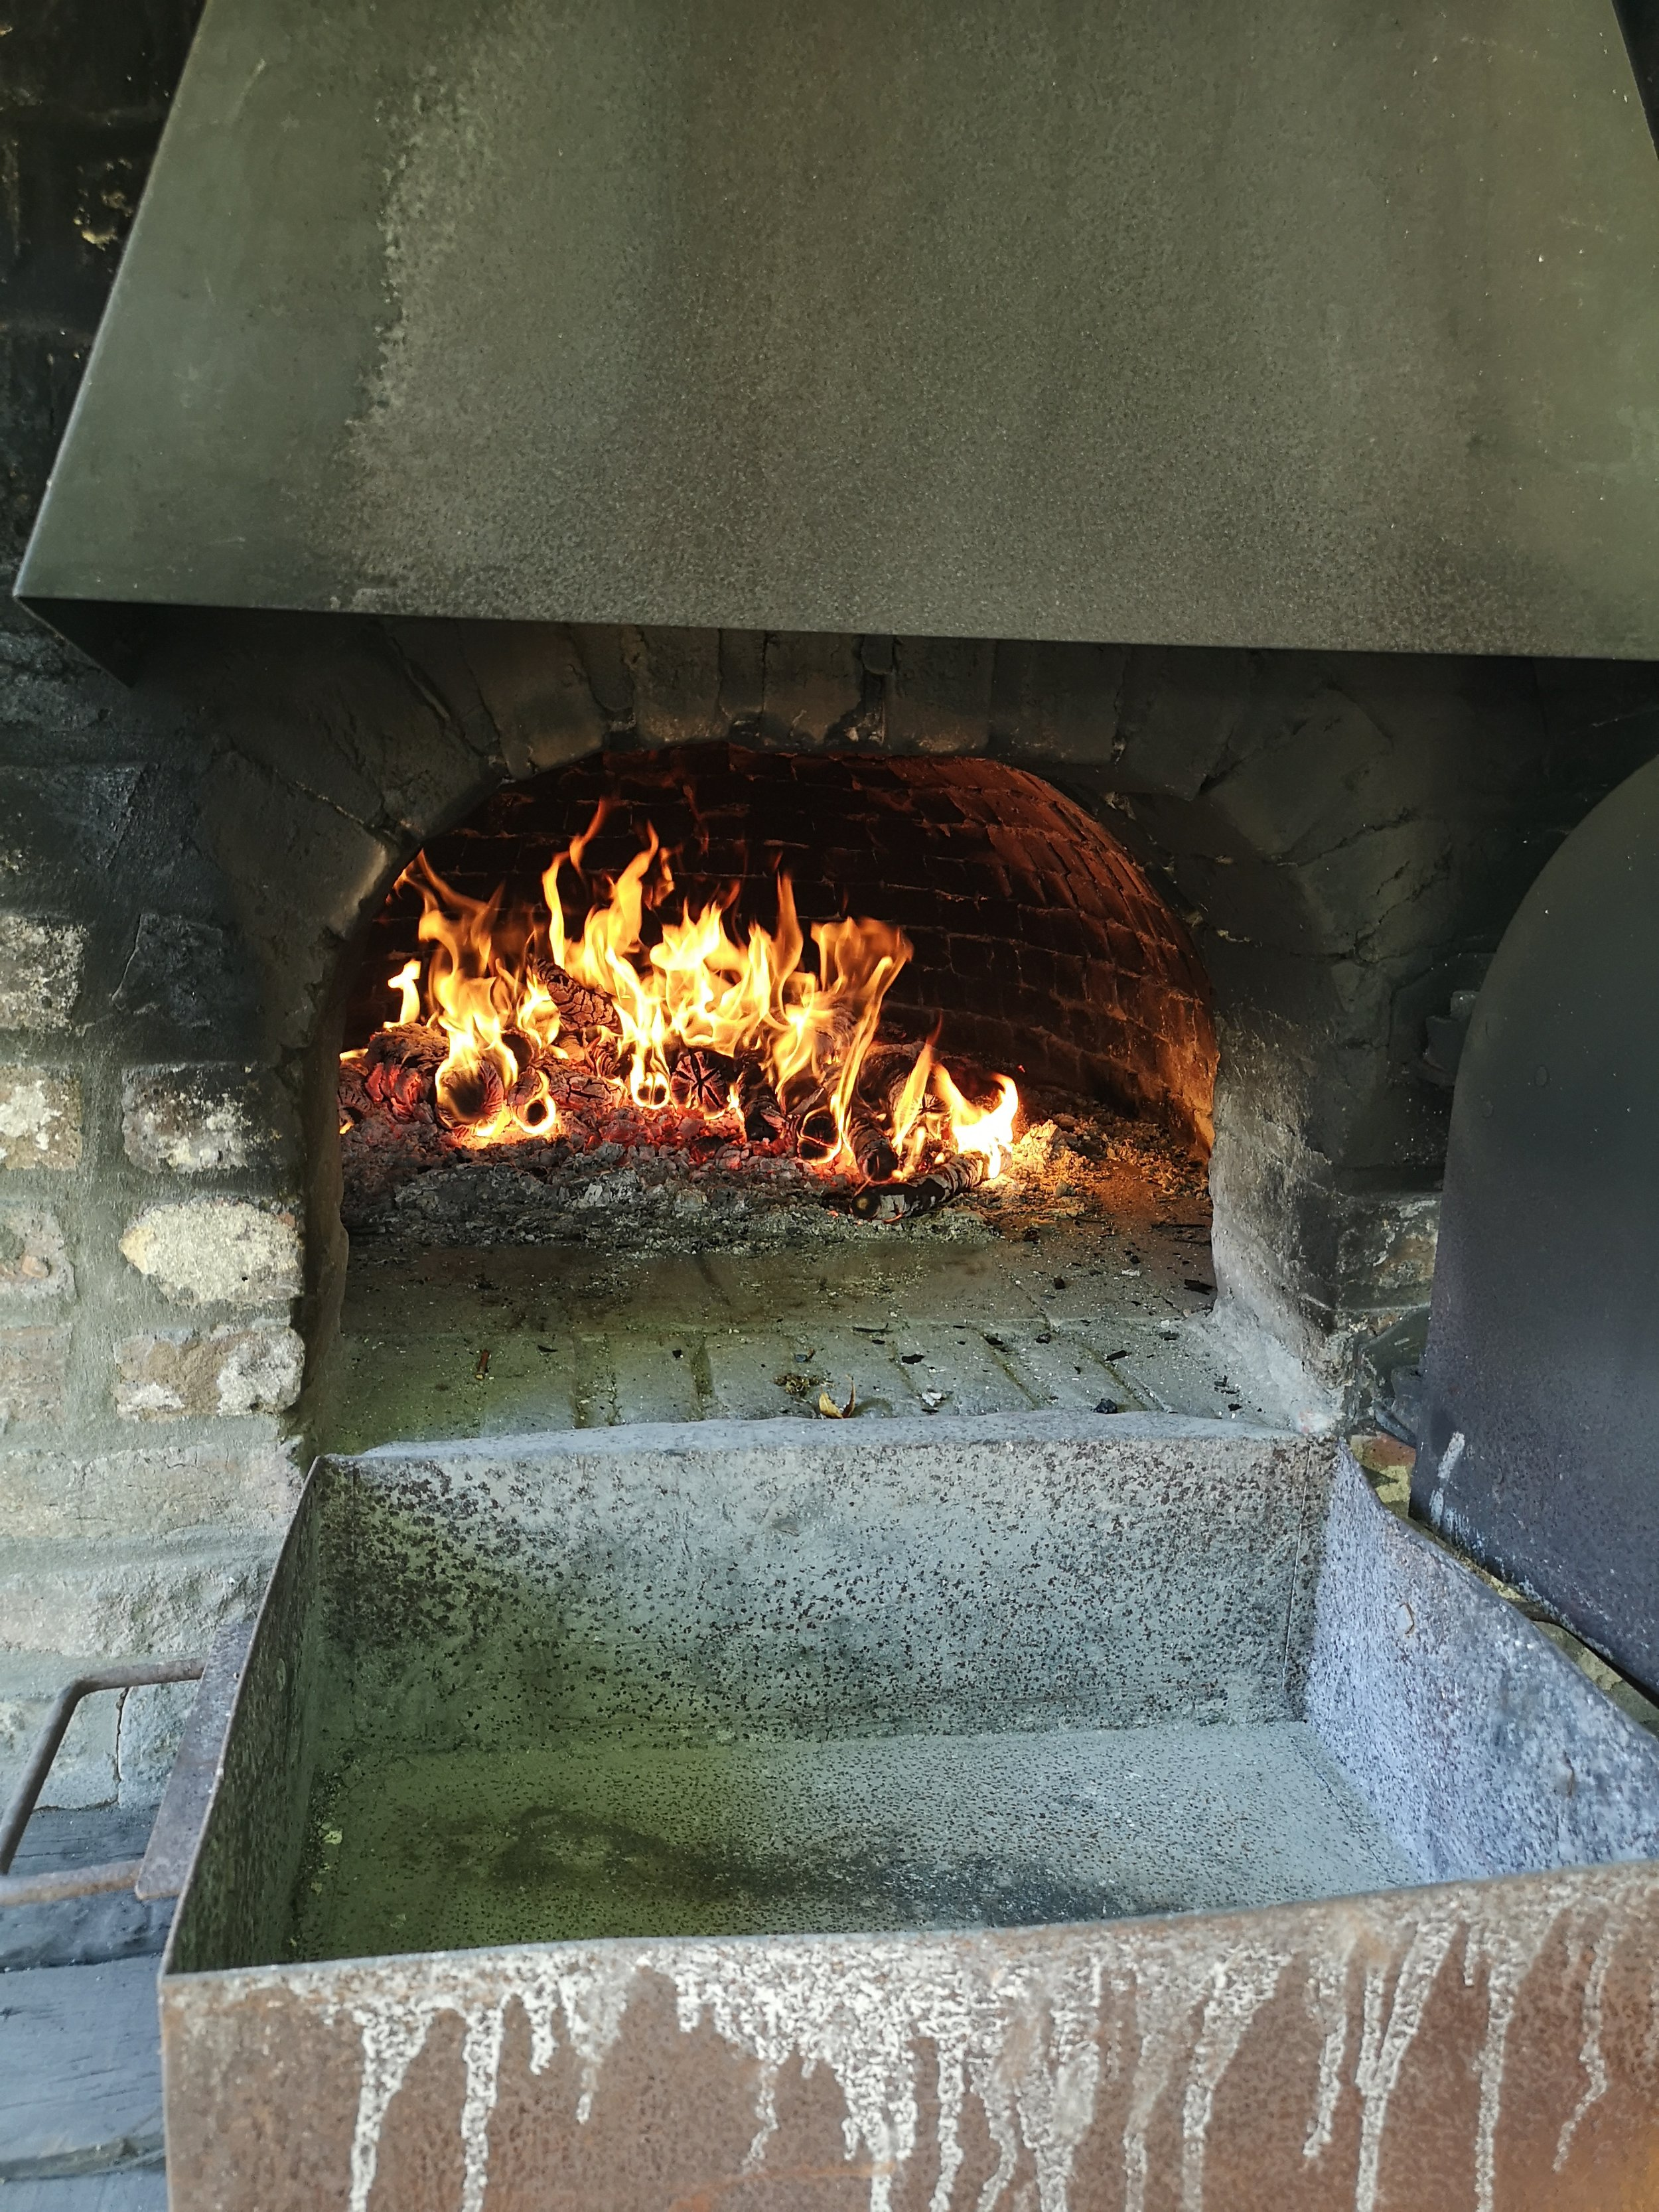 Outdoor oven for baking bread